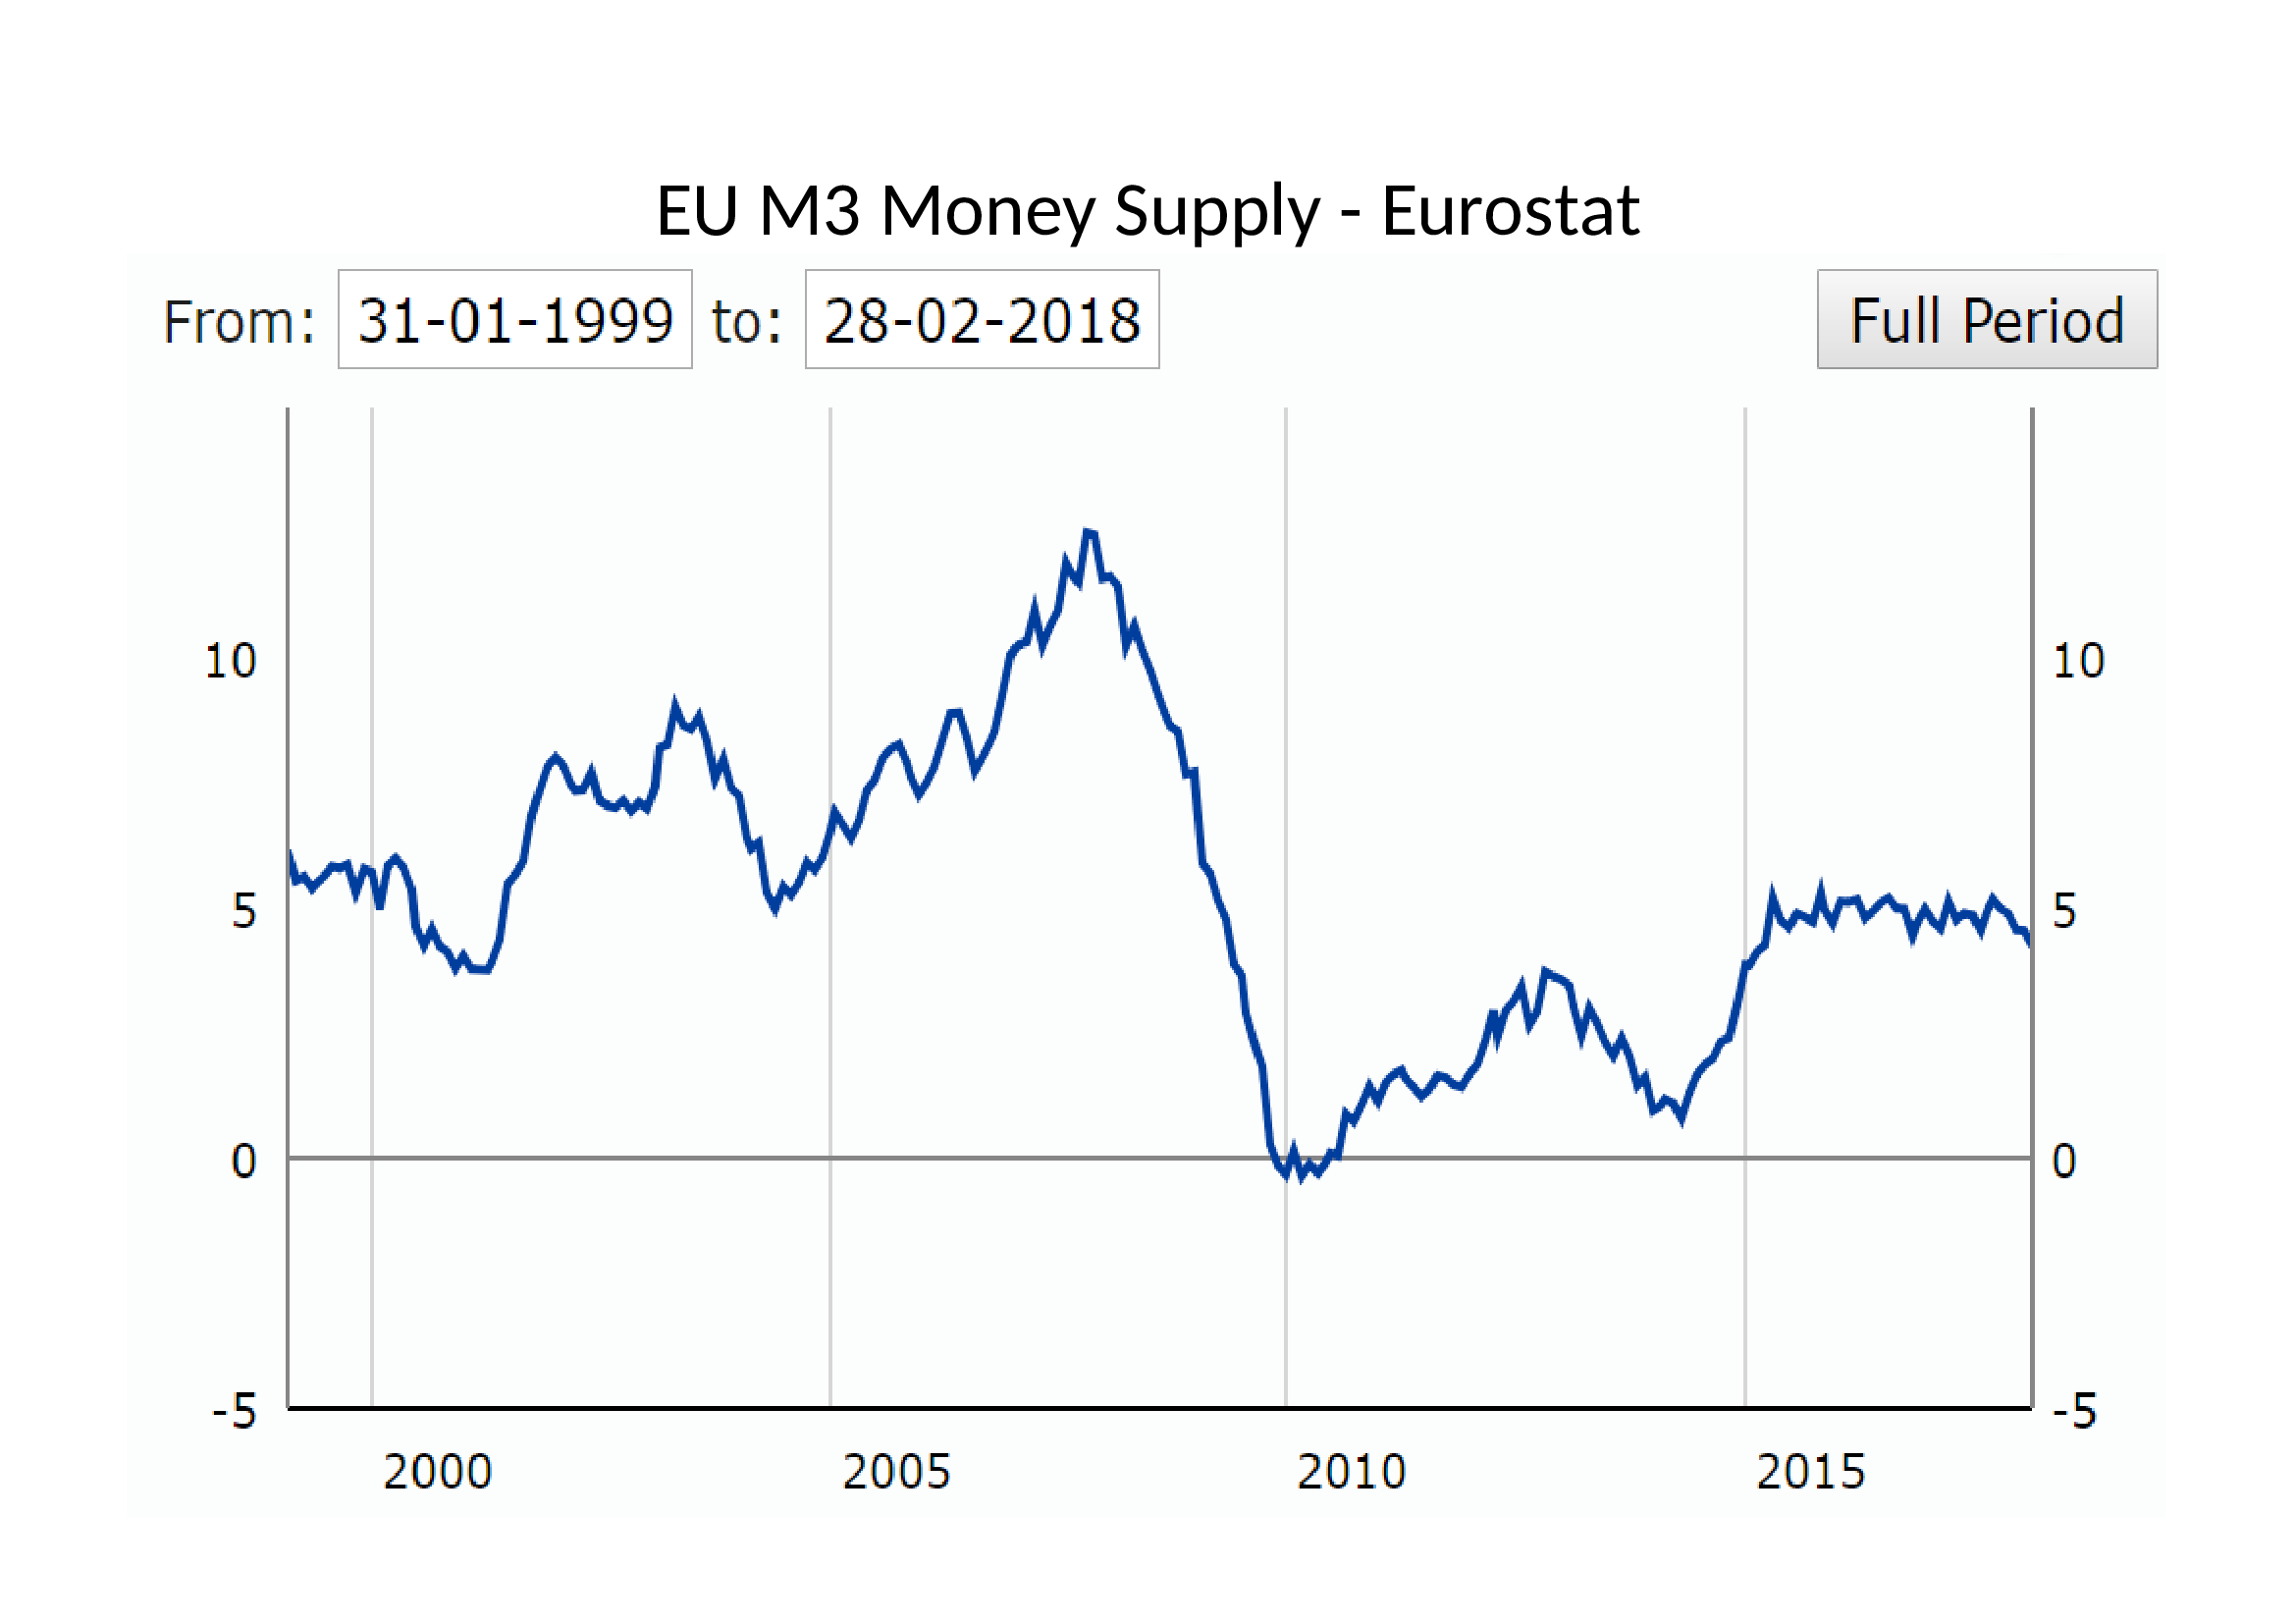 EU M3 Money Supply